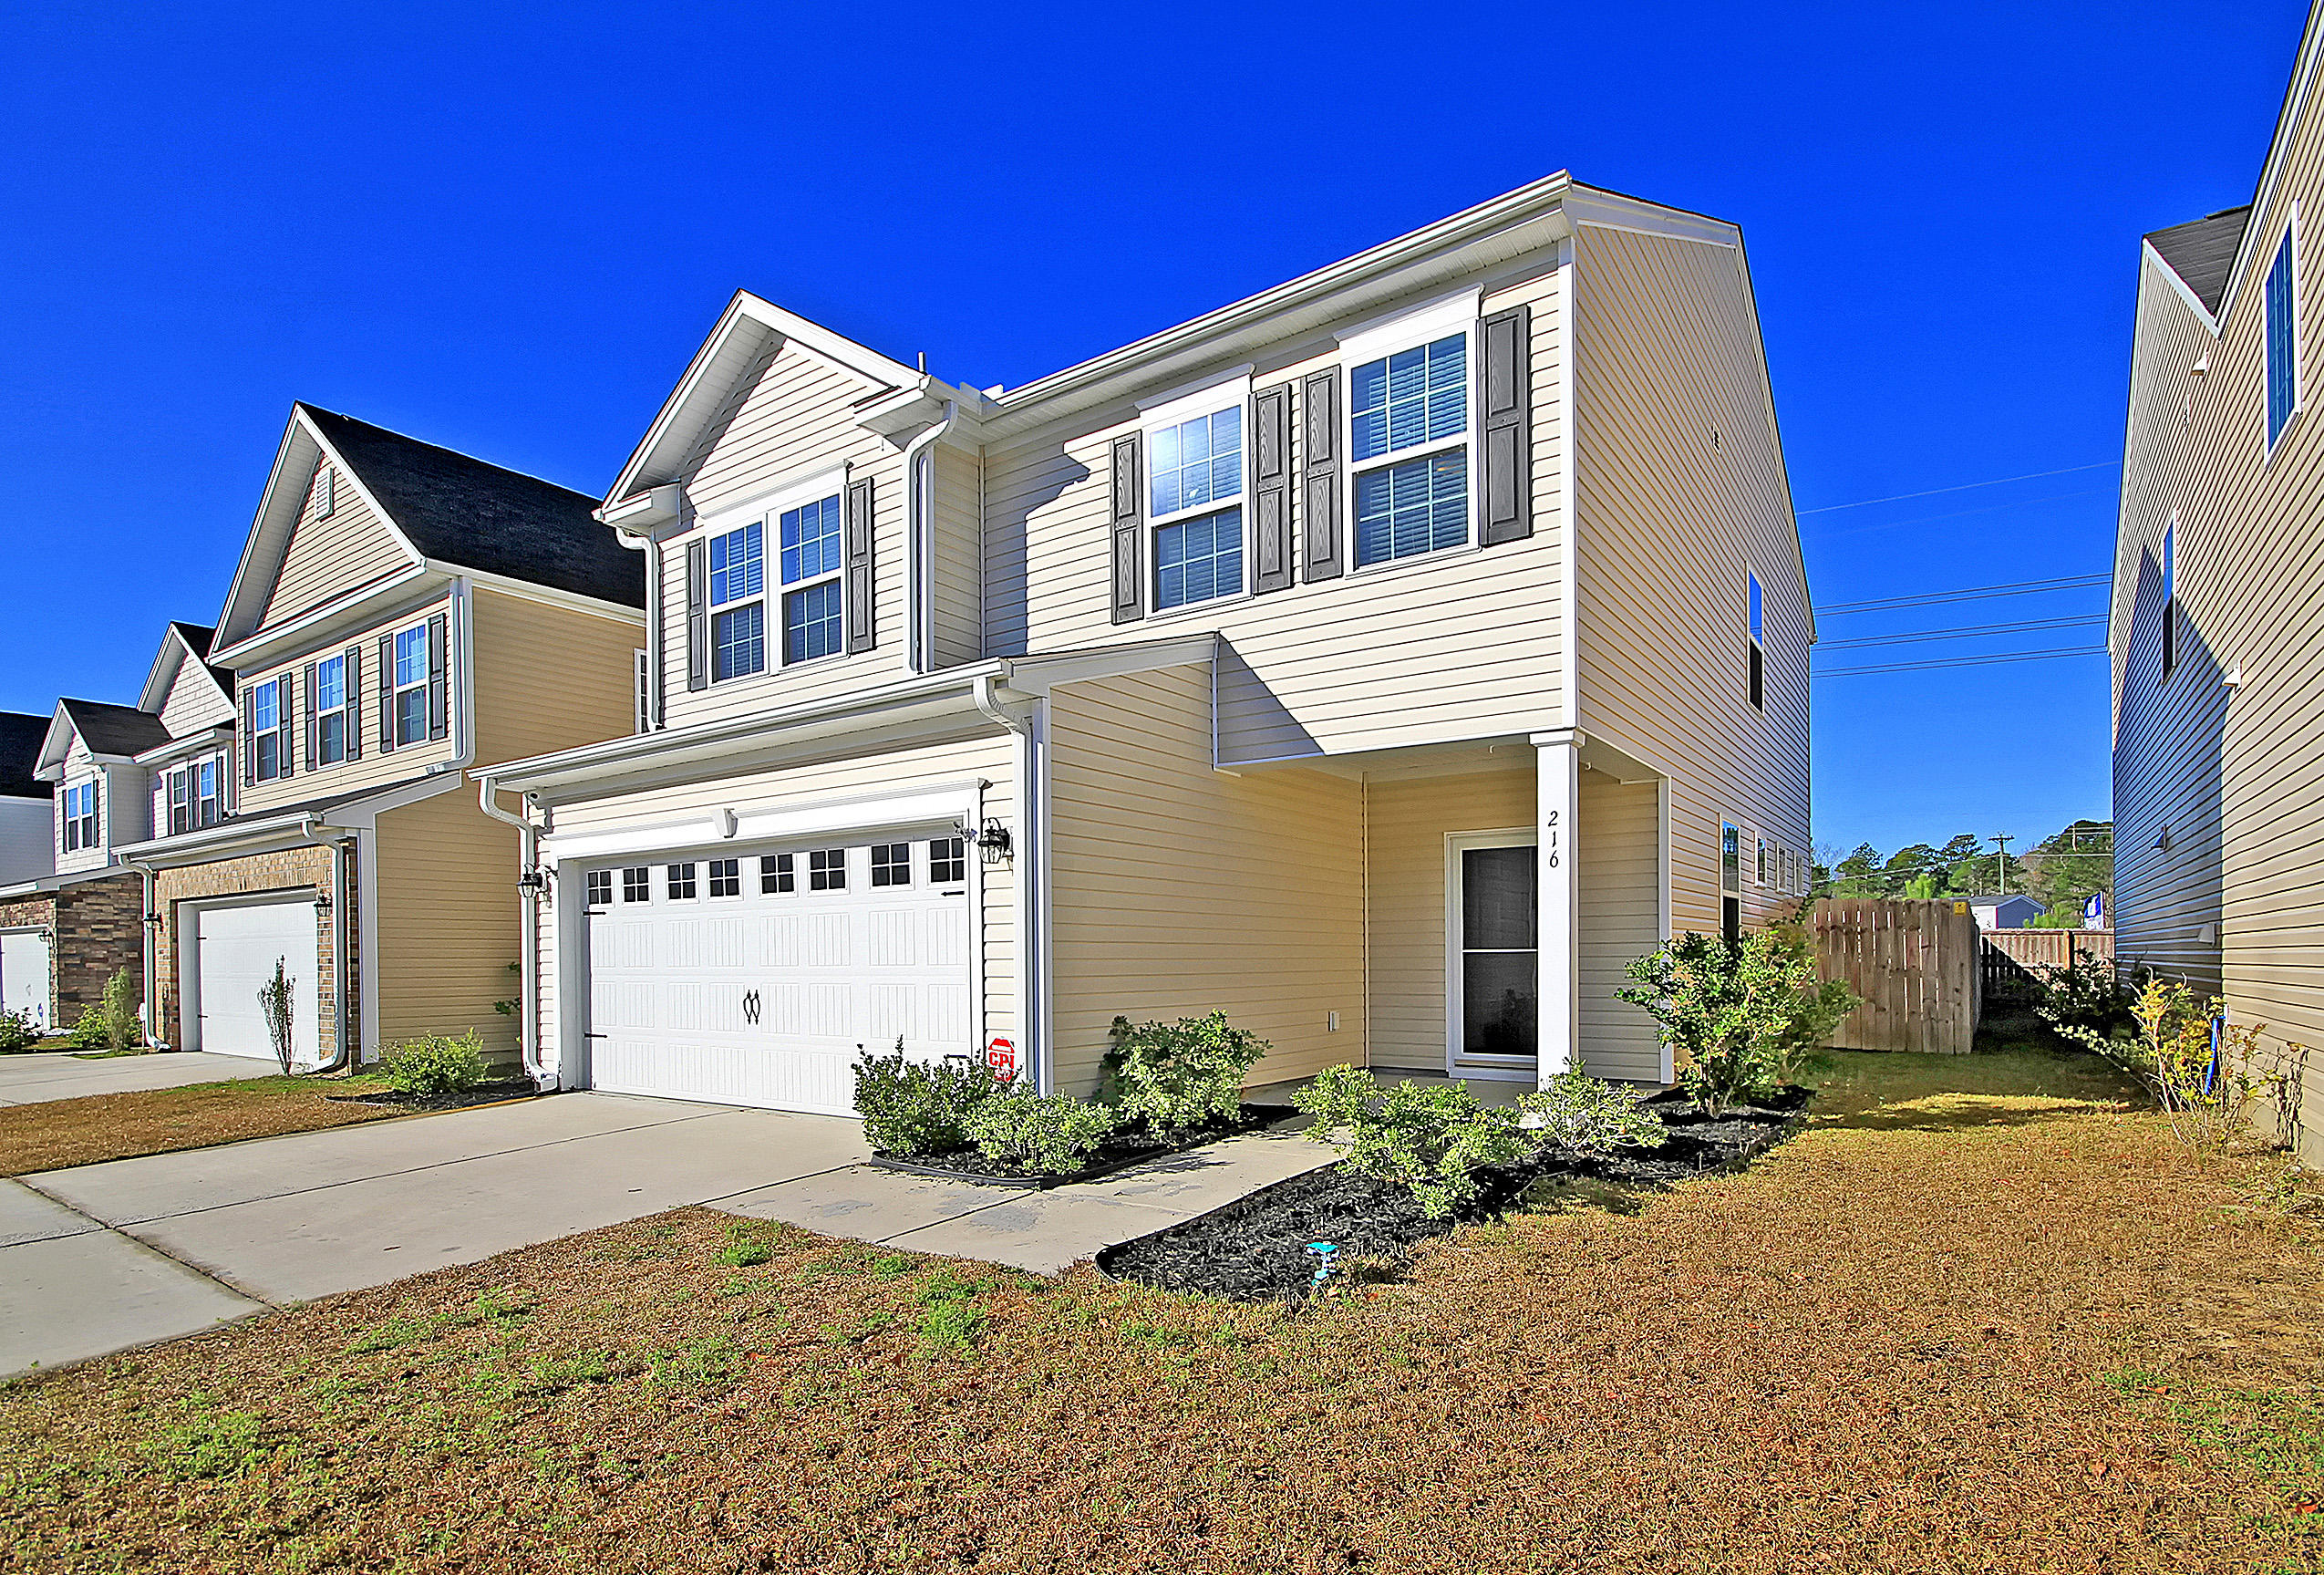 216 Swamp Creek Lane Moncks Corner, Sc 29461